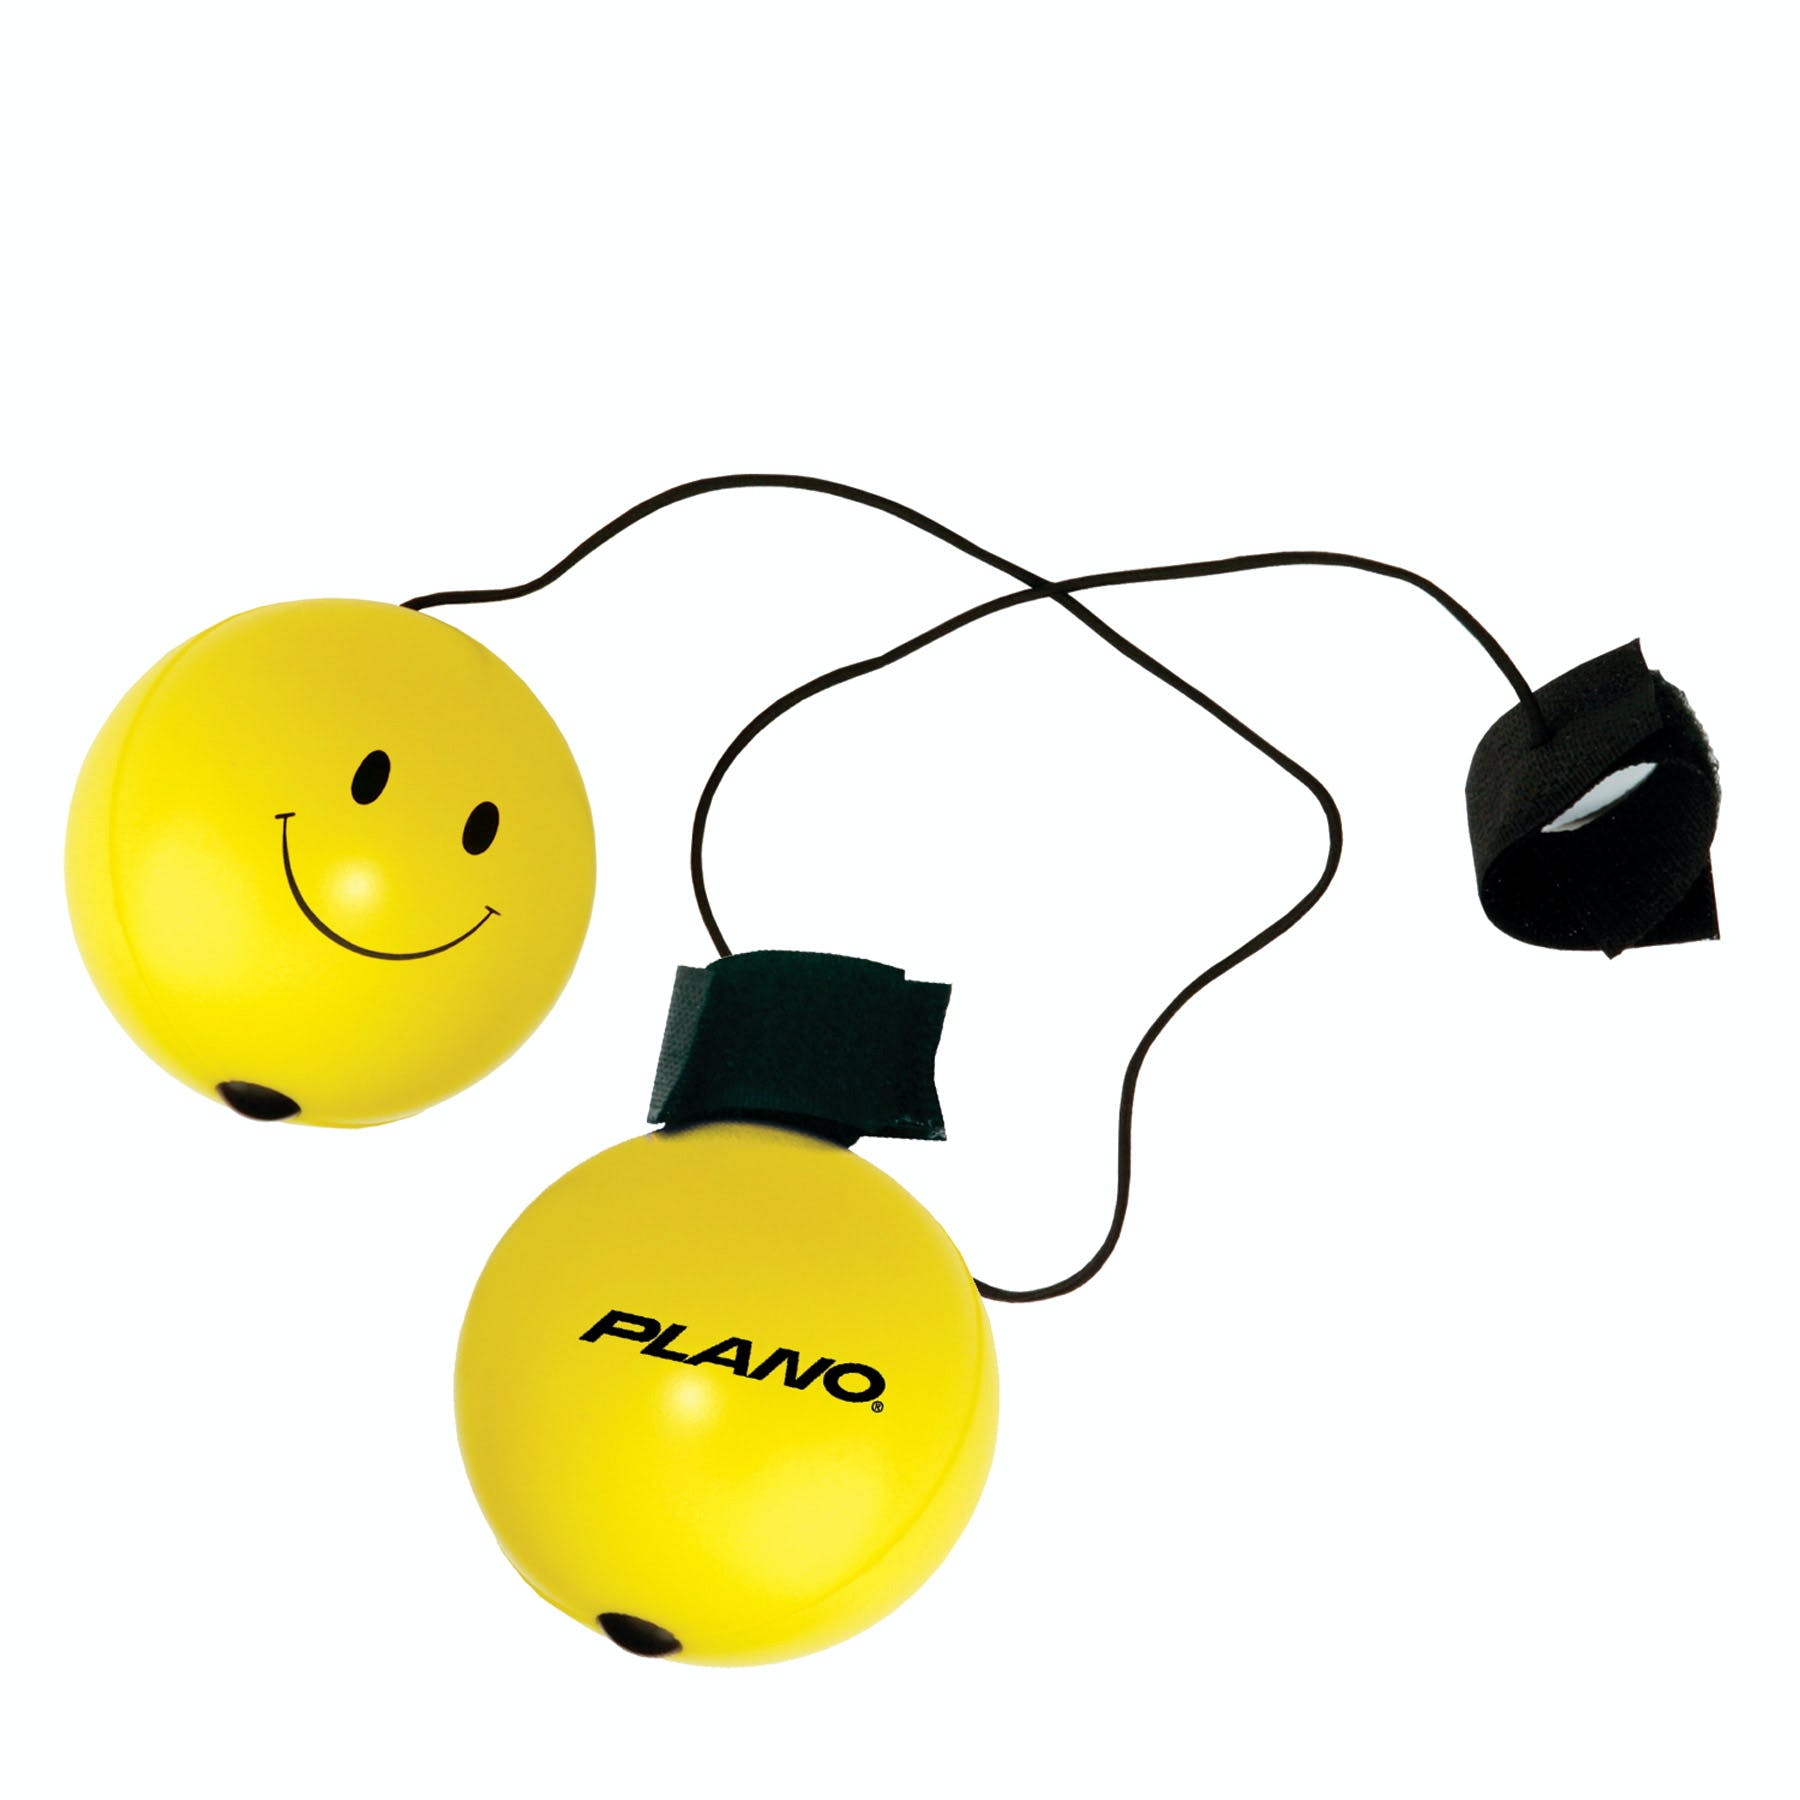 Smiley Face Bounce Back Stress Reliever Ball (Item # NCKNR-DAJYA) Stress ball sold by InkEasy